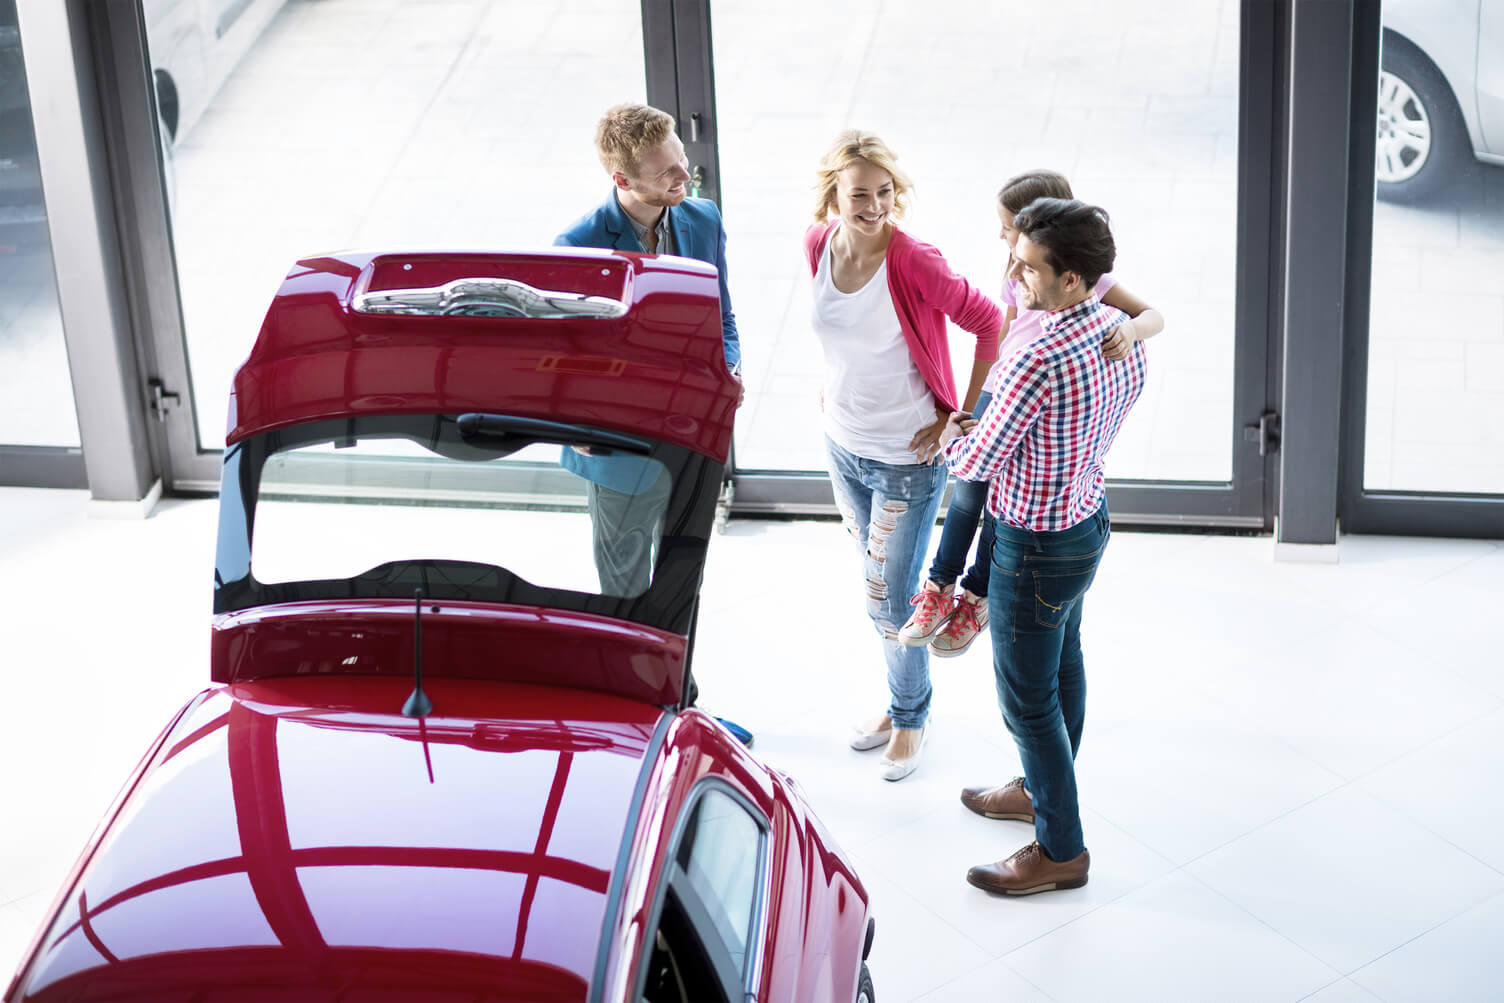 Three people admiring the the carrying capacity of a car on the showroom floor.